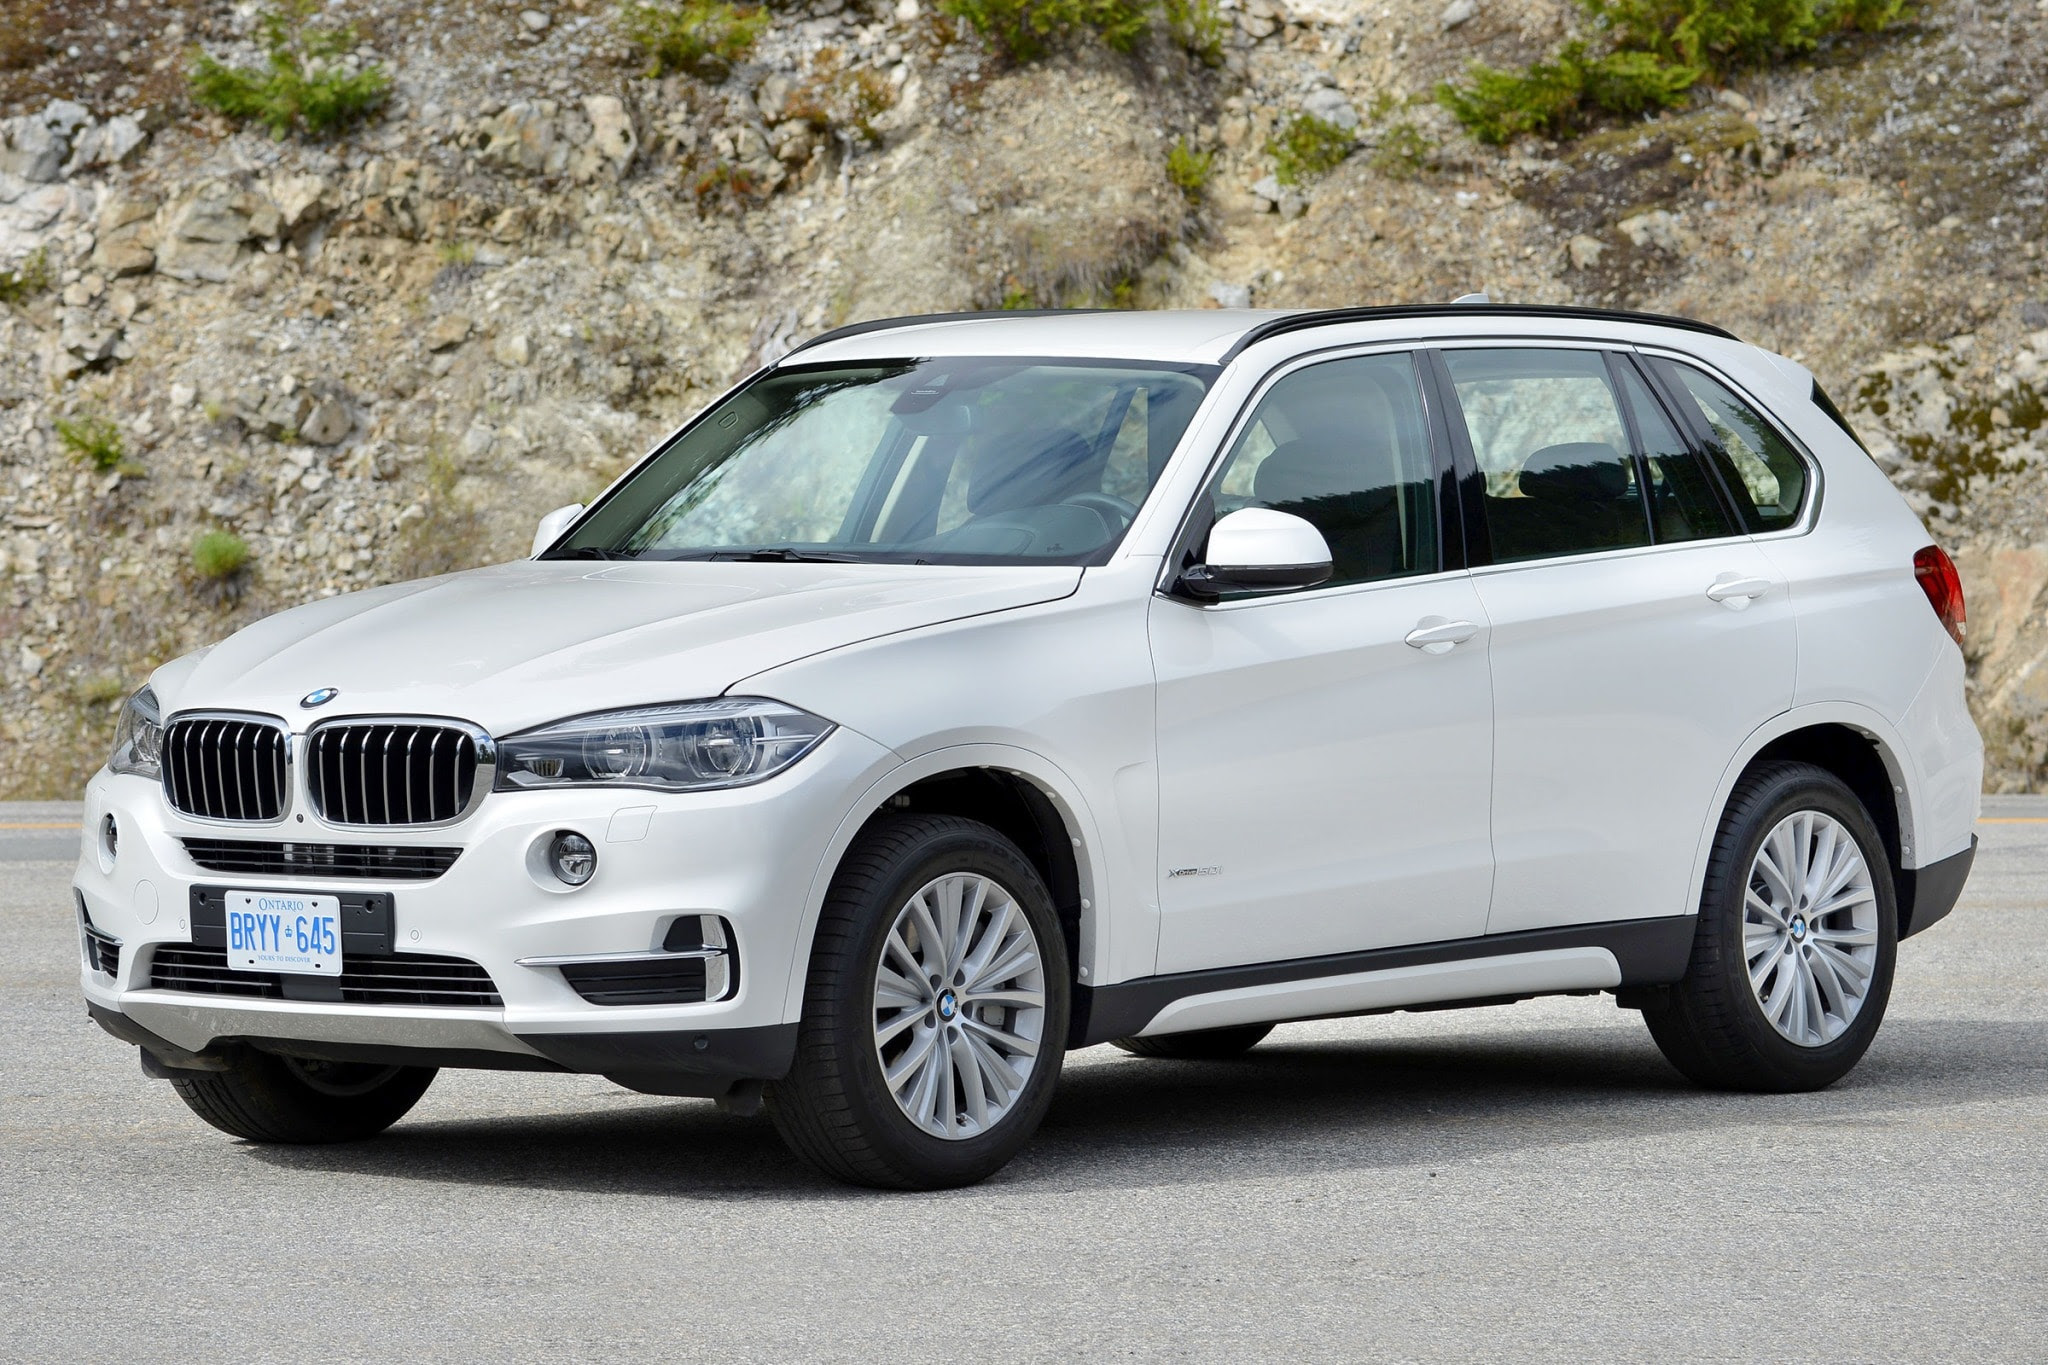 bmw x5 edrive price new cars review. Black Bedroom Furniture Sets. Home Design Ideas